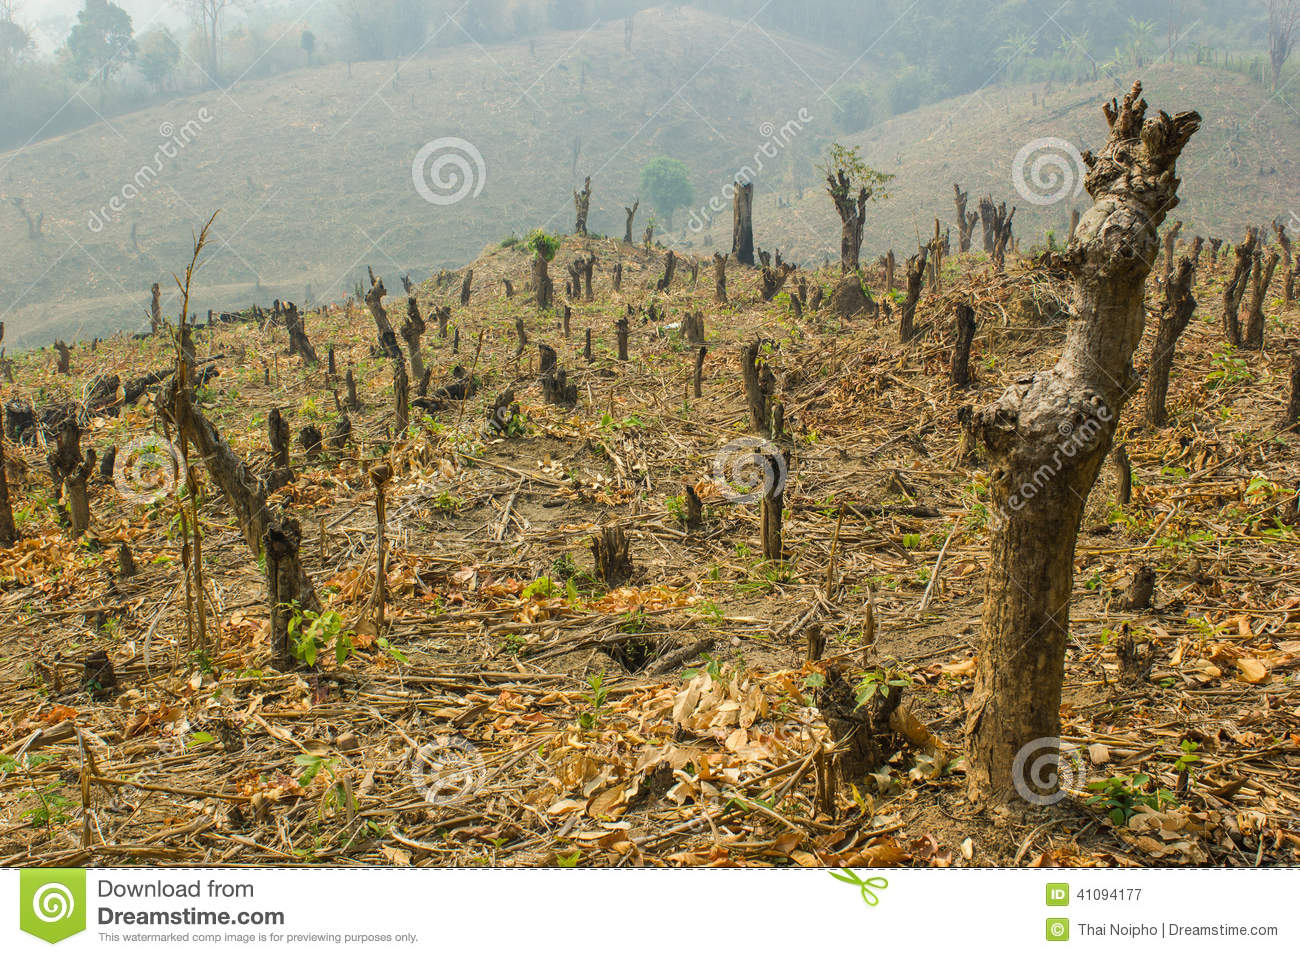 Slash And Burn Cultivation Stock Photo | CartoonDealer.com ...